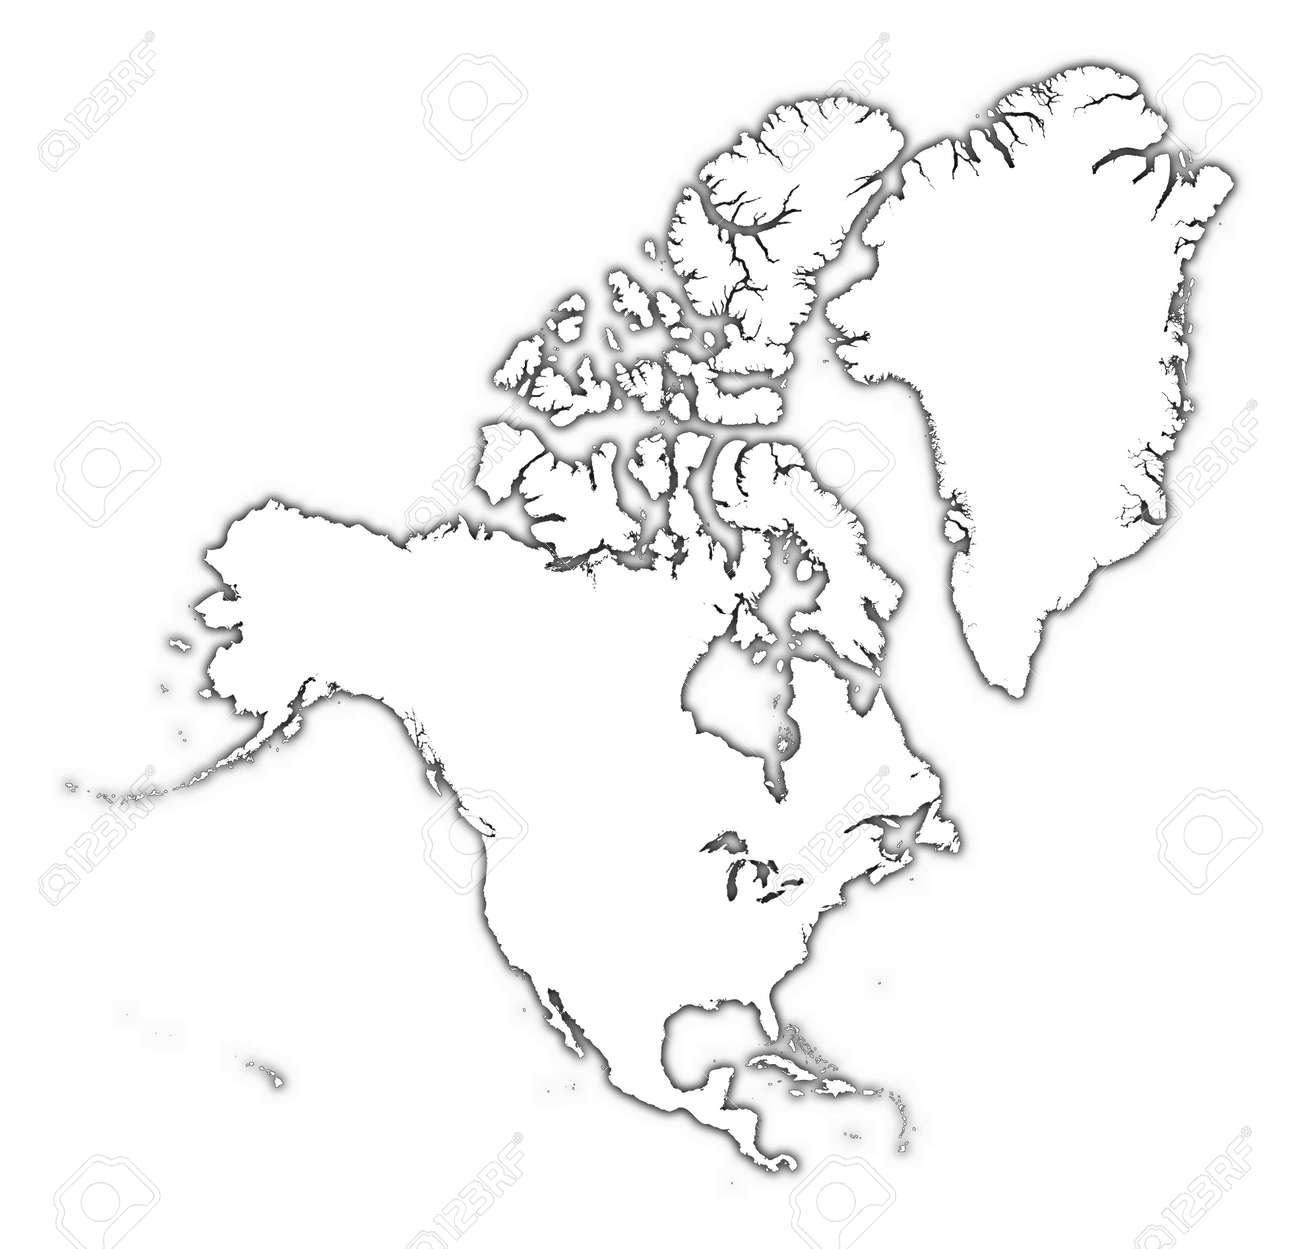 North America Outline Map With Shadow. Detailed, Mercator Projection ...